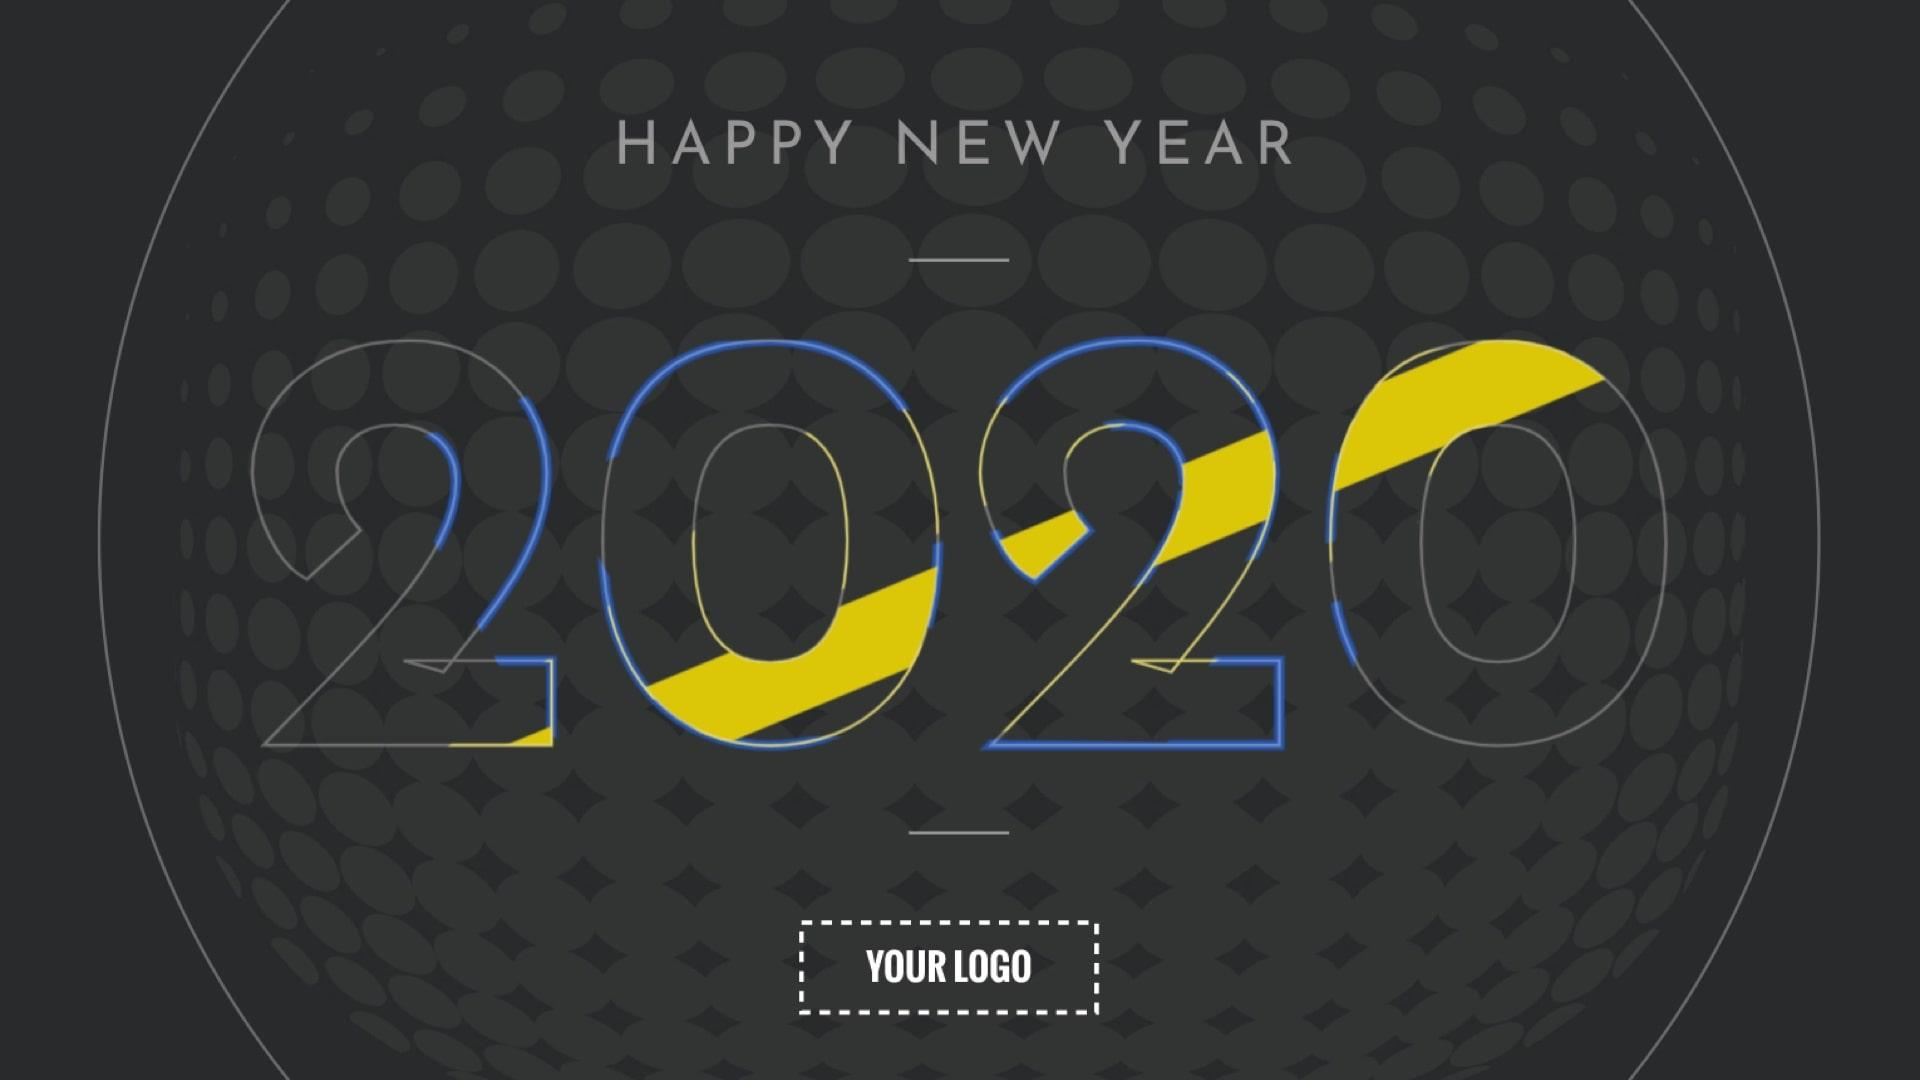 Happy New Year Digital Signage Template